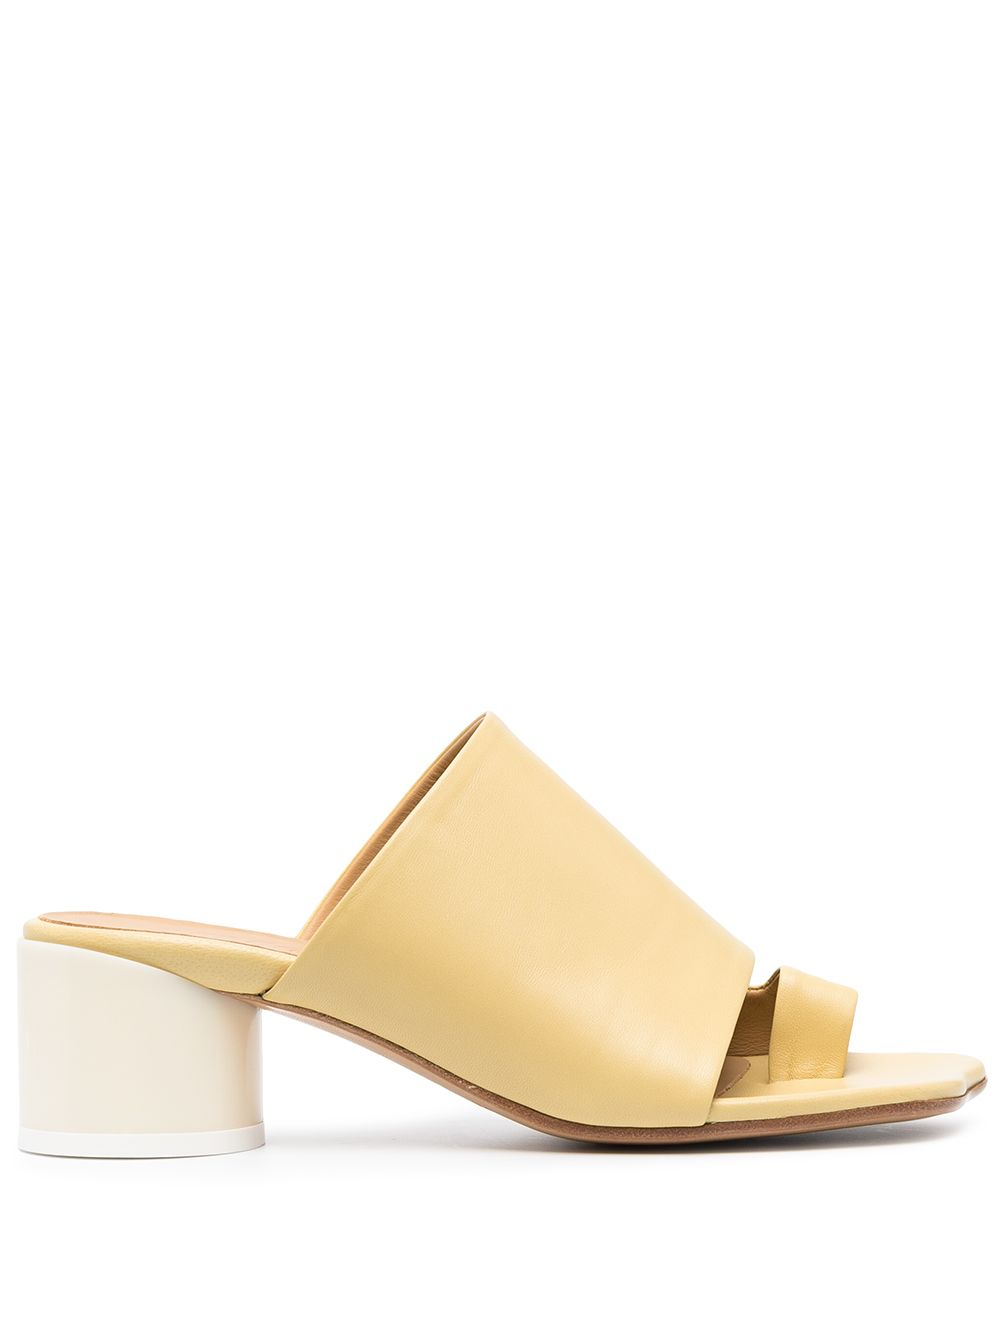 MM6 Maison Margiela Sandals Yellow